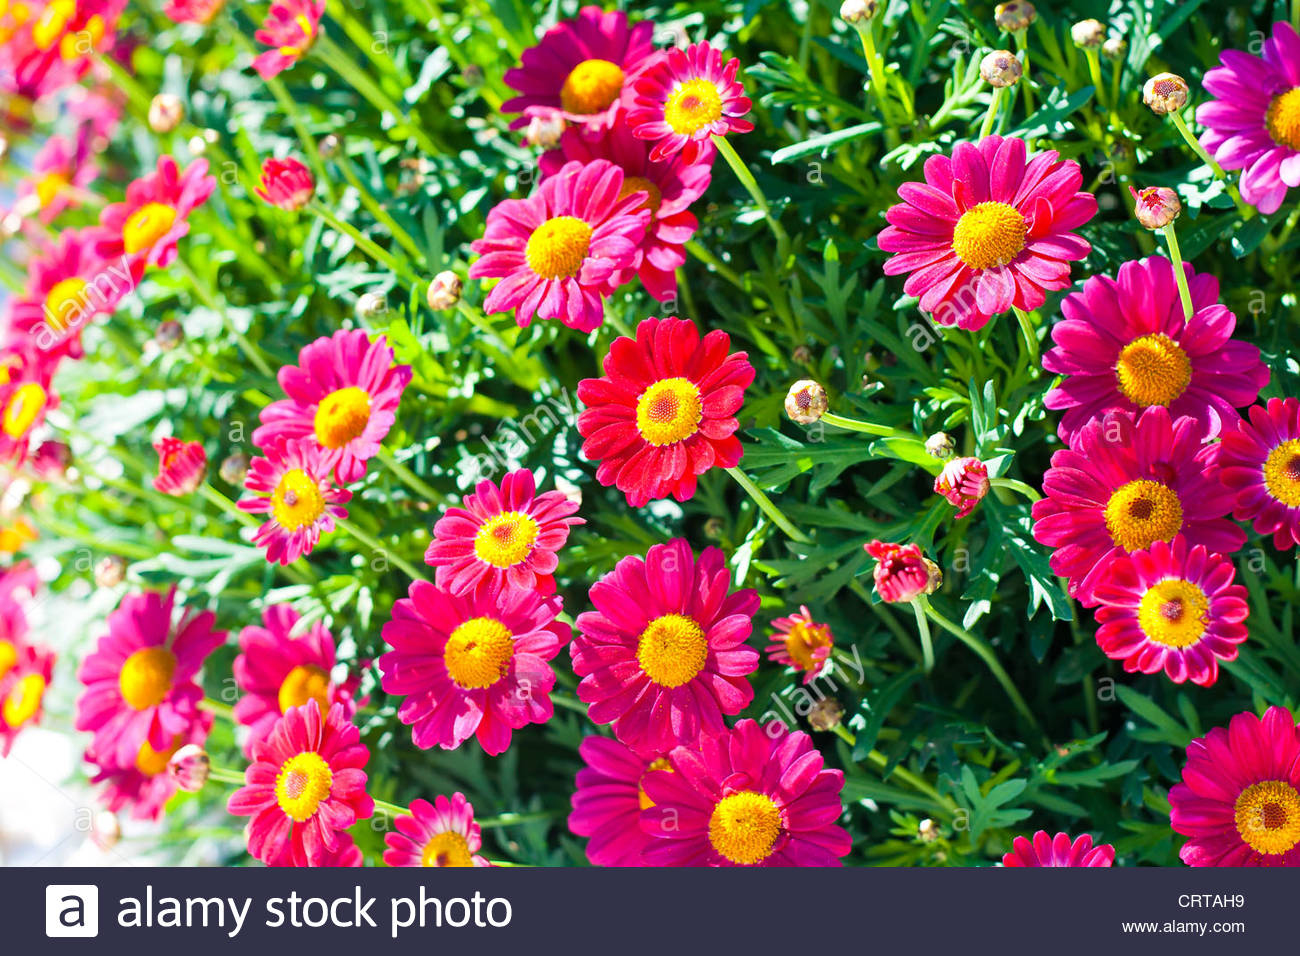 Redish purple daisy, Asteraceae, in a garden. Aster. - Stock Image